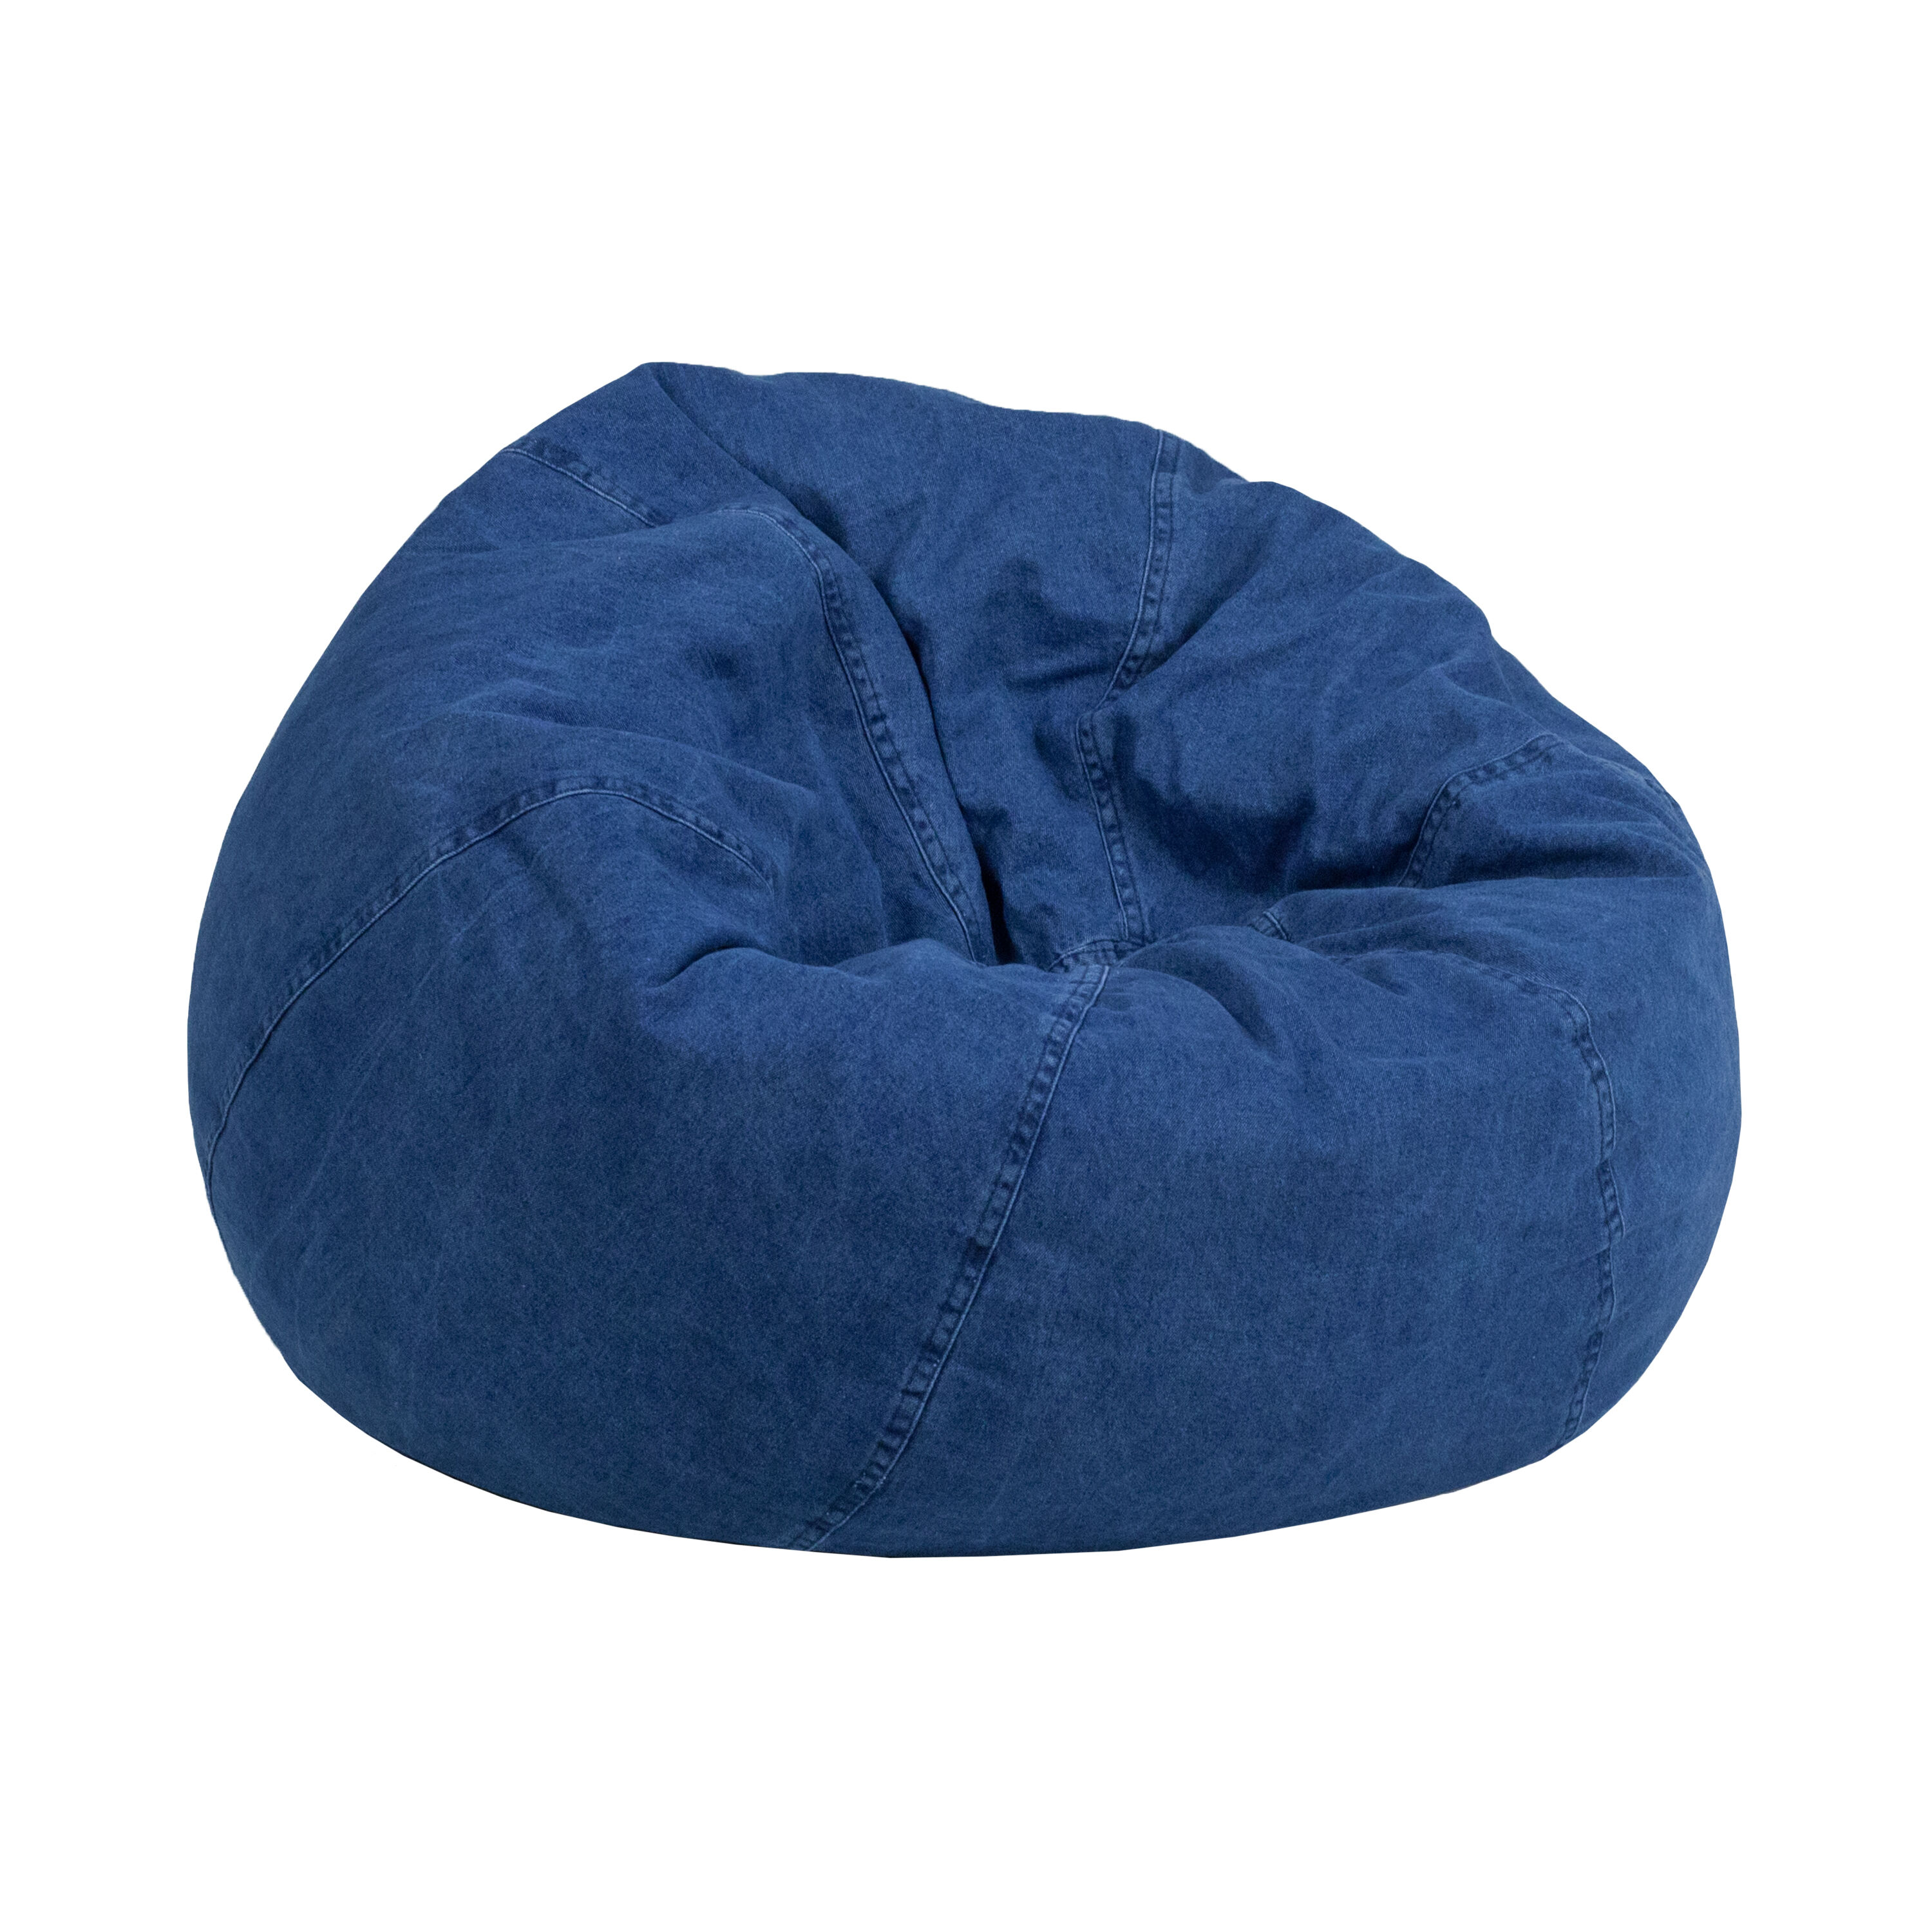 Denim Bean Bag Chair Dg Bean Small Denim Gg Bizchaircom